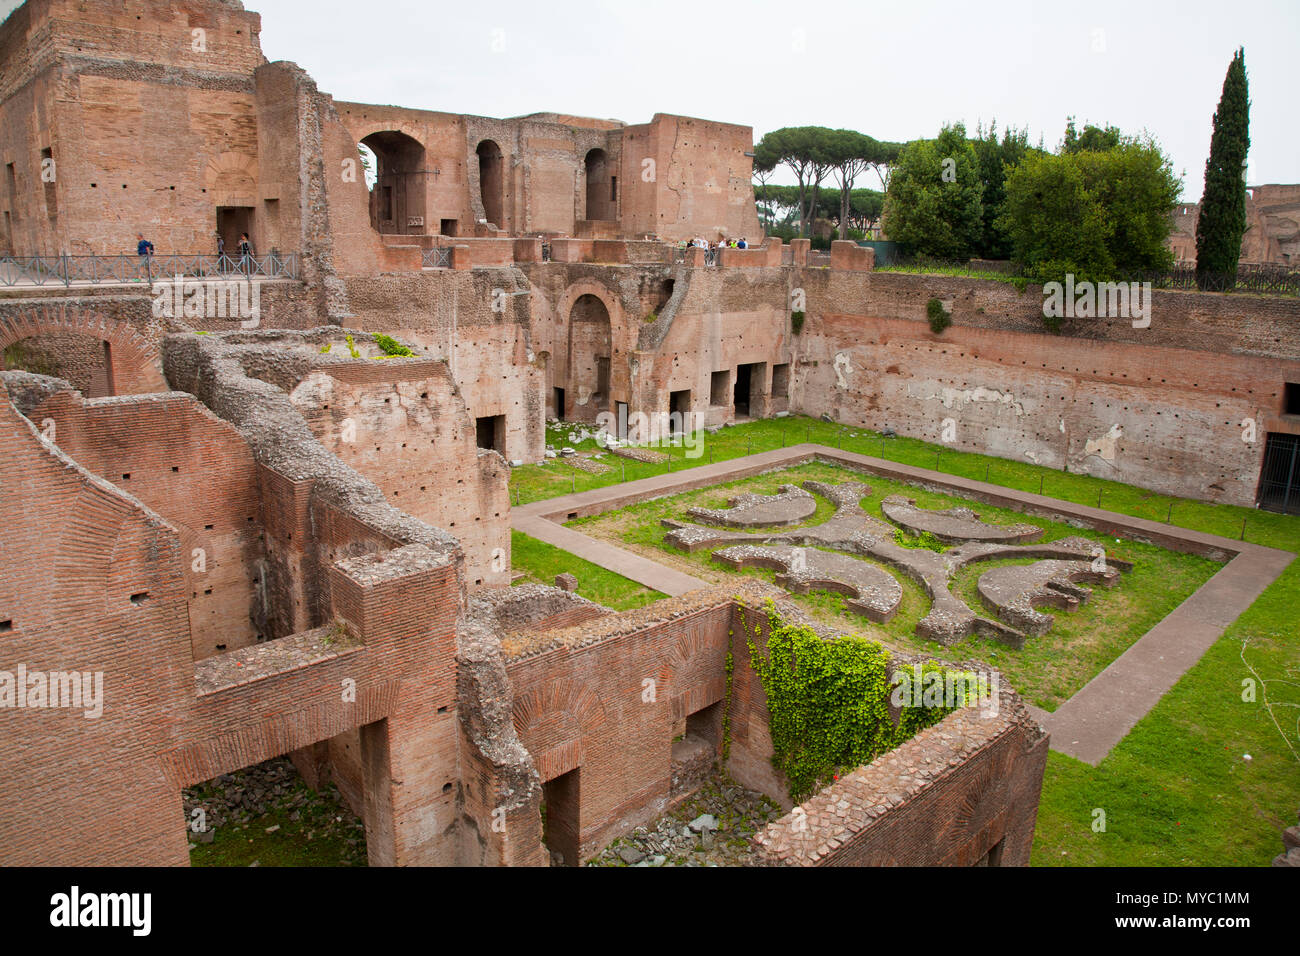 May 11, 2016: Rome, Italy- the famous gardens in the roman ruins of ...